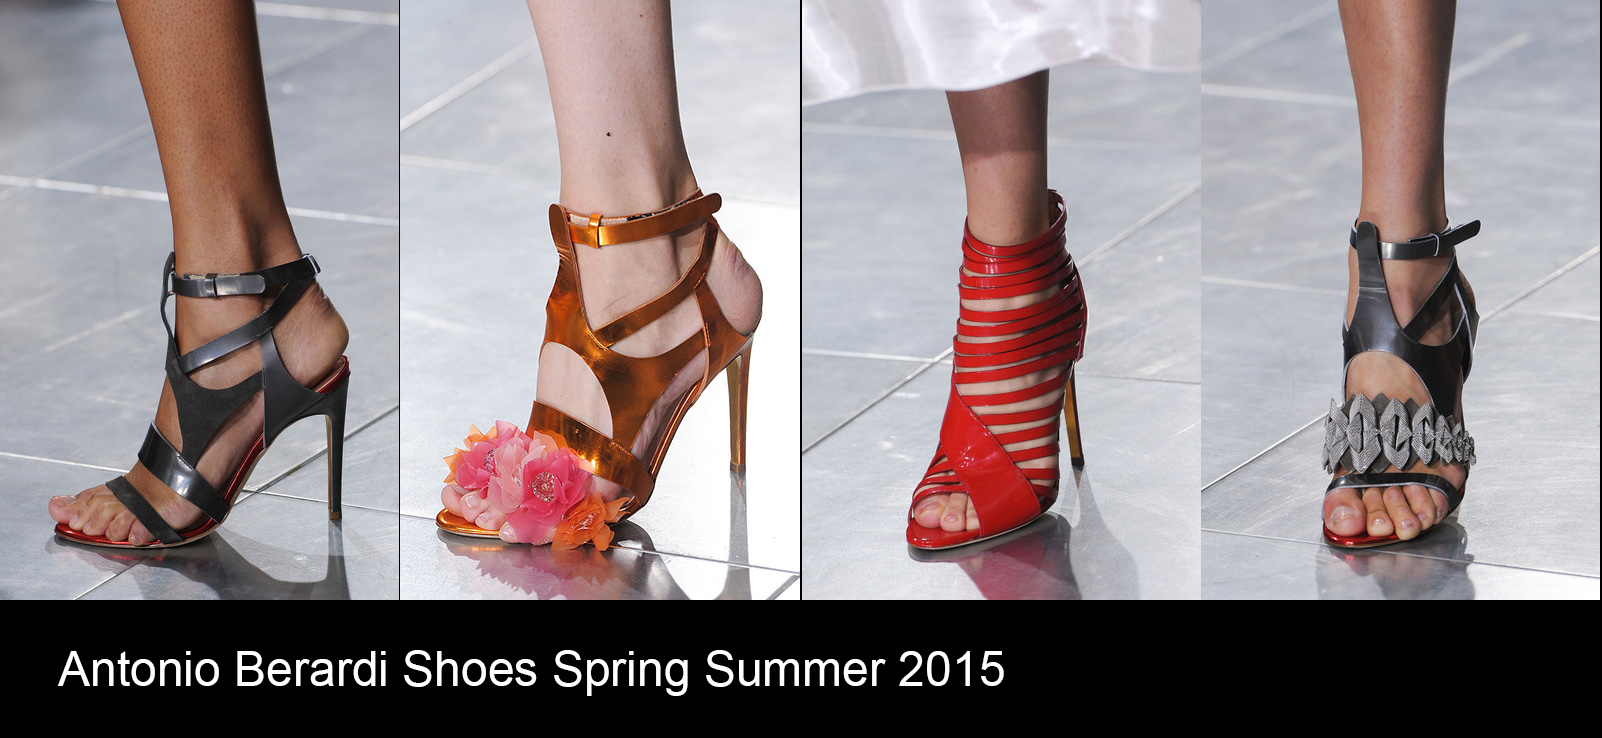 Antonio-Berardi-Shoes-Spring-Summer-2015